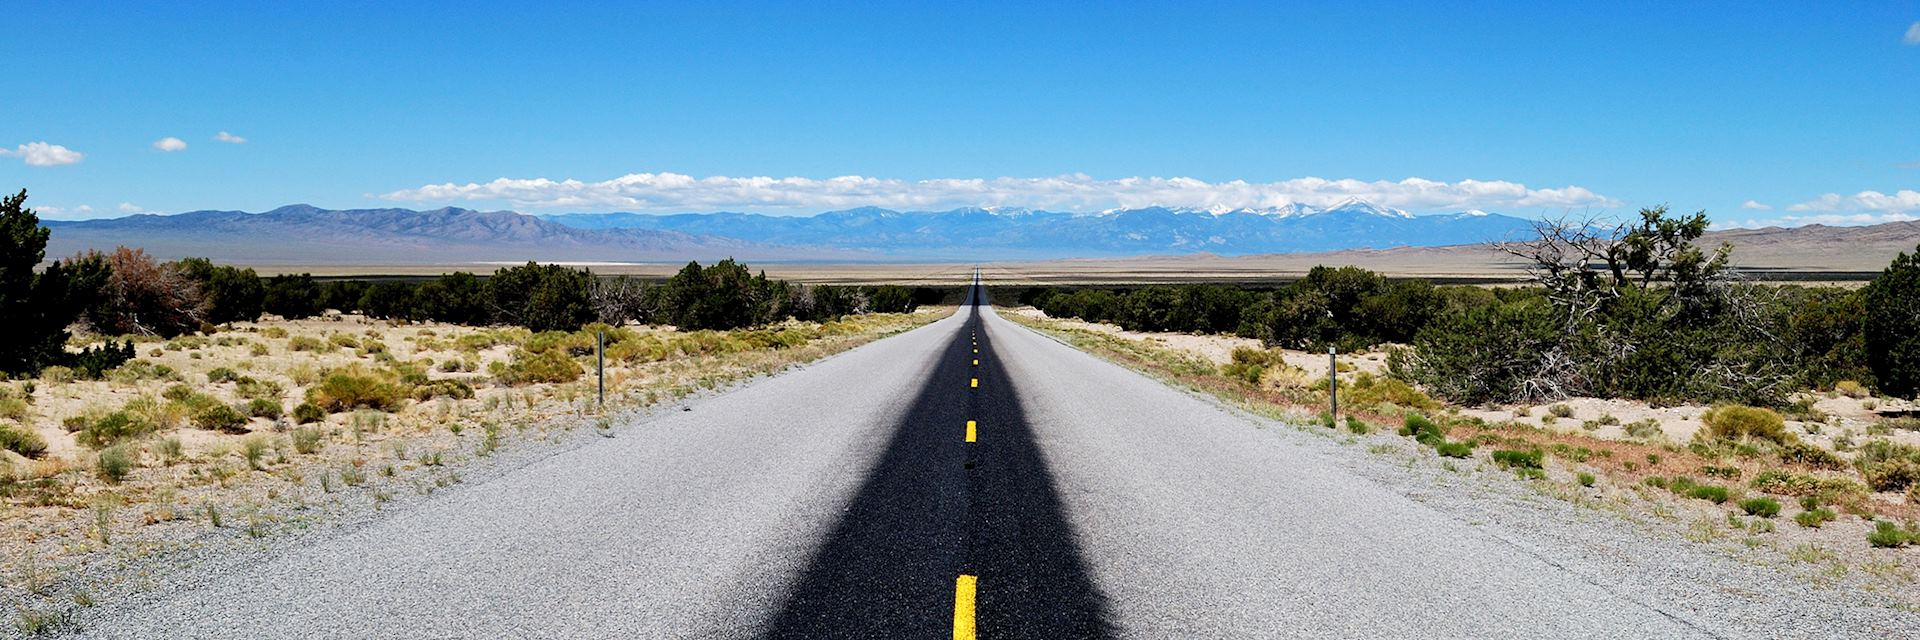 Highway 50, in Nevada by Andrew McGee